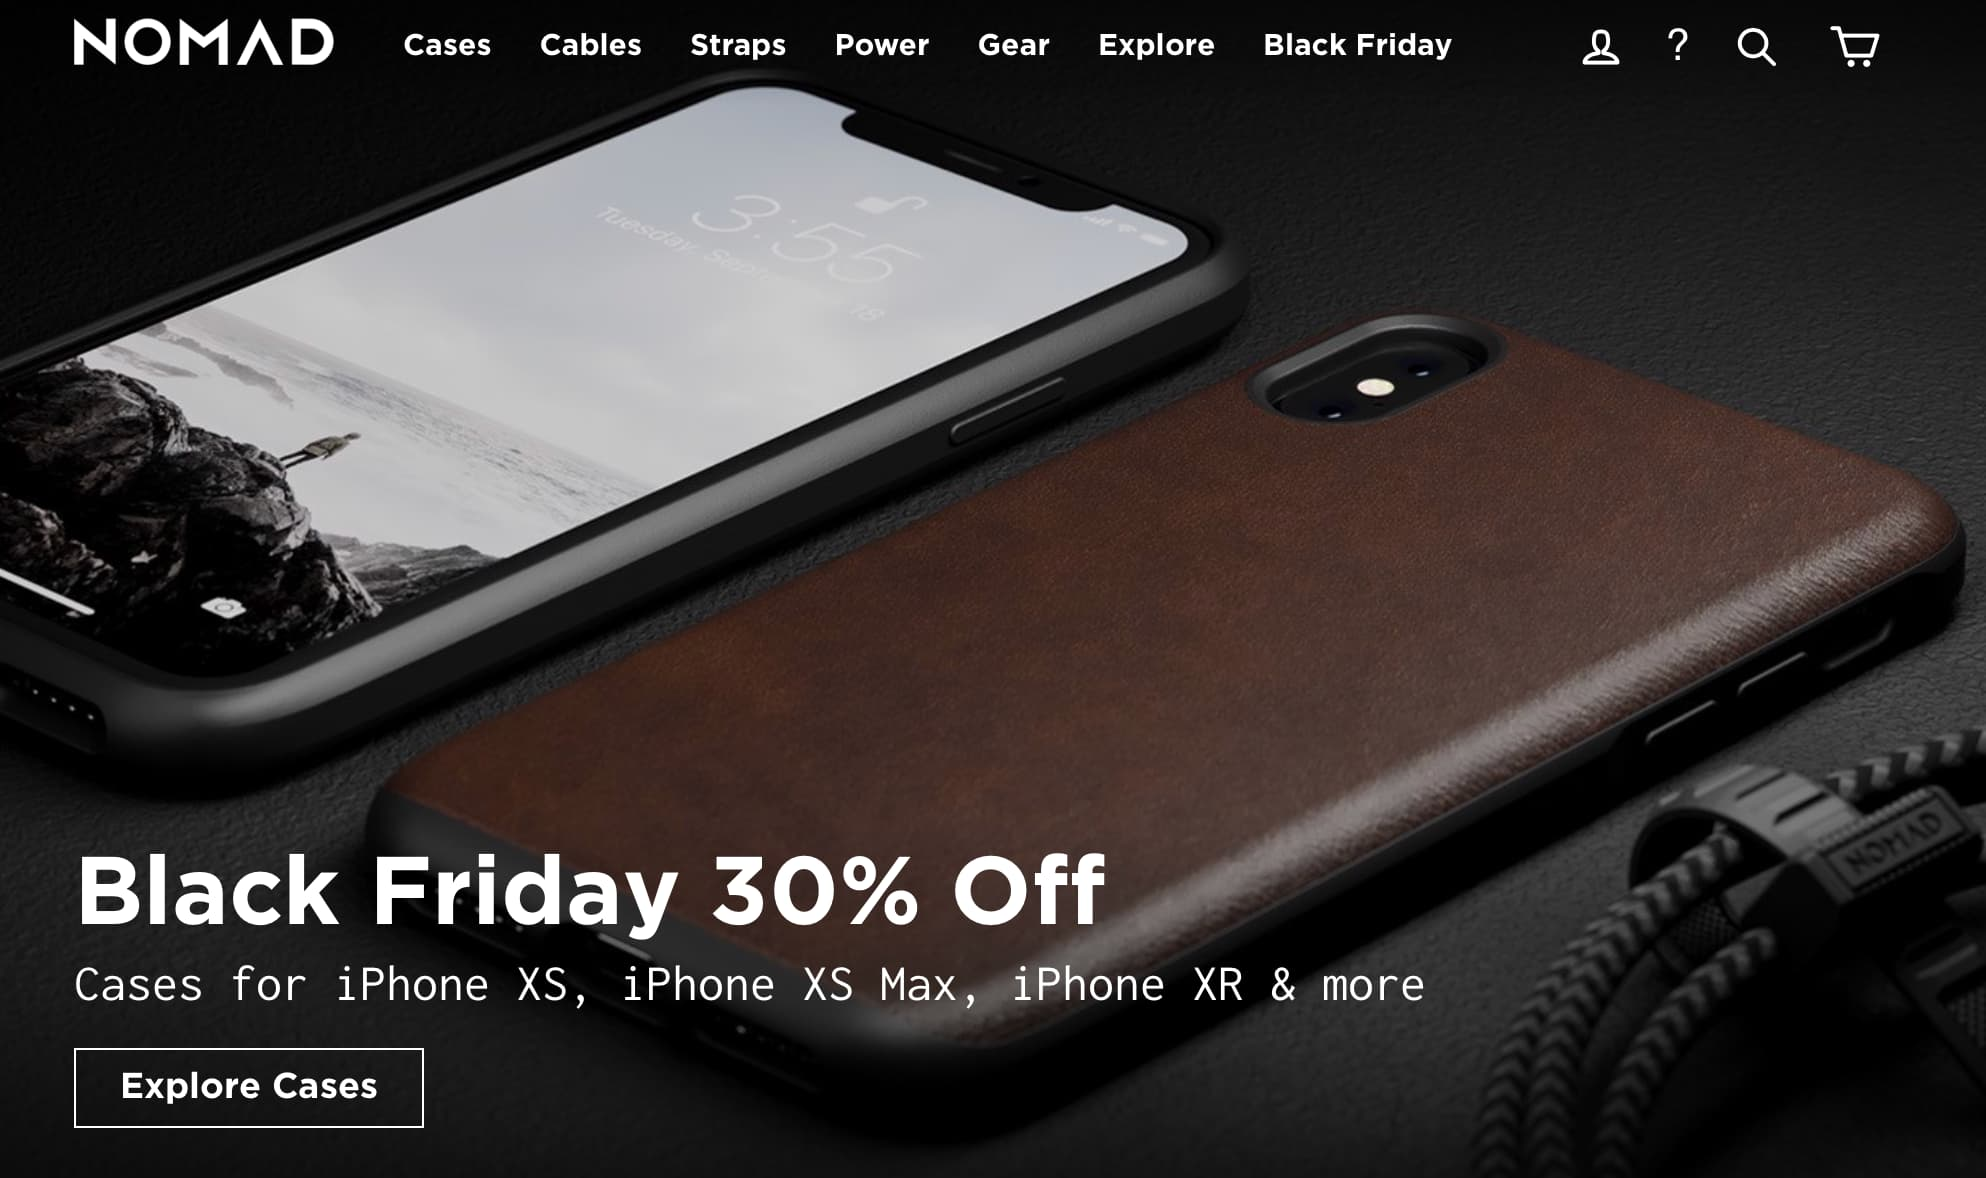 Nomad's Black Friday banner discount deal with an iPhone XS with an active screen.